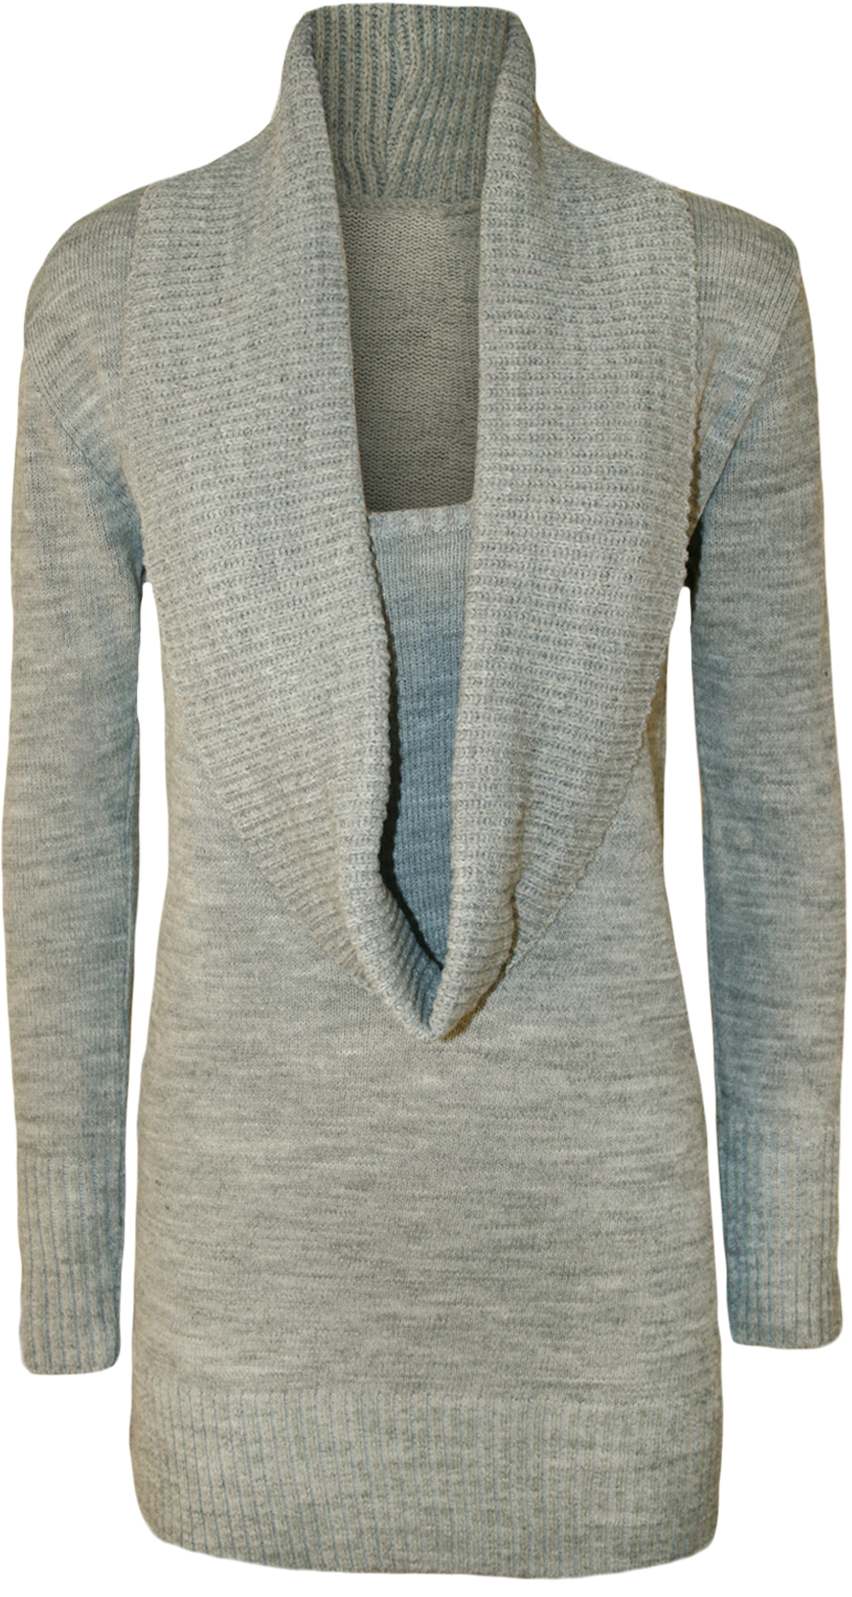 New Womens Plain Cowl Neck Long Sleeve Insert Ladies Knitted Top Jumper 8 - 1...